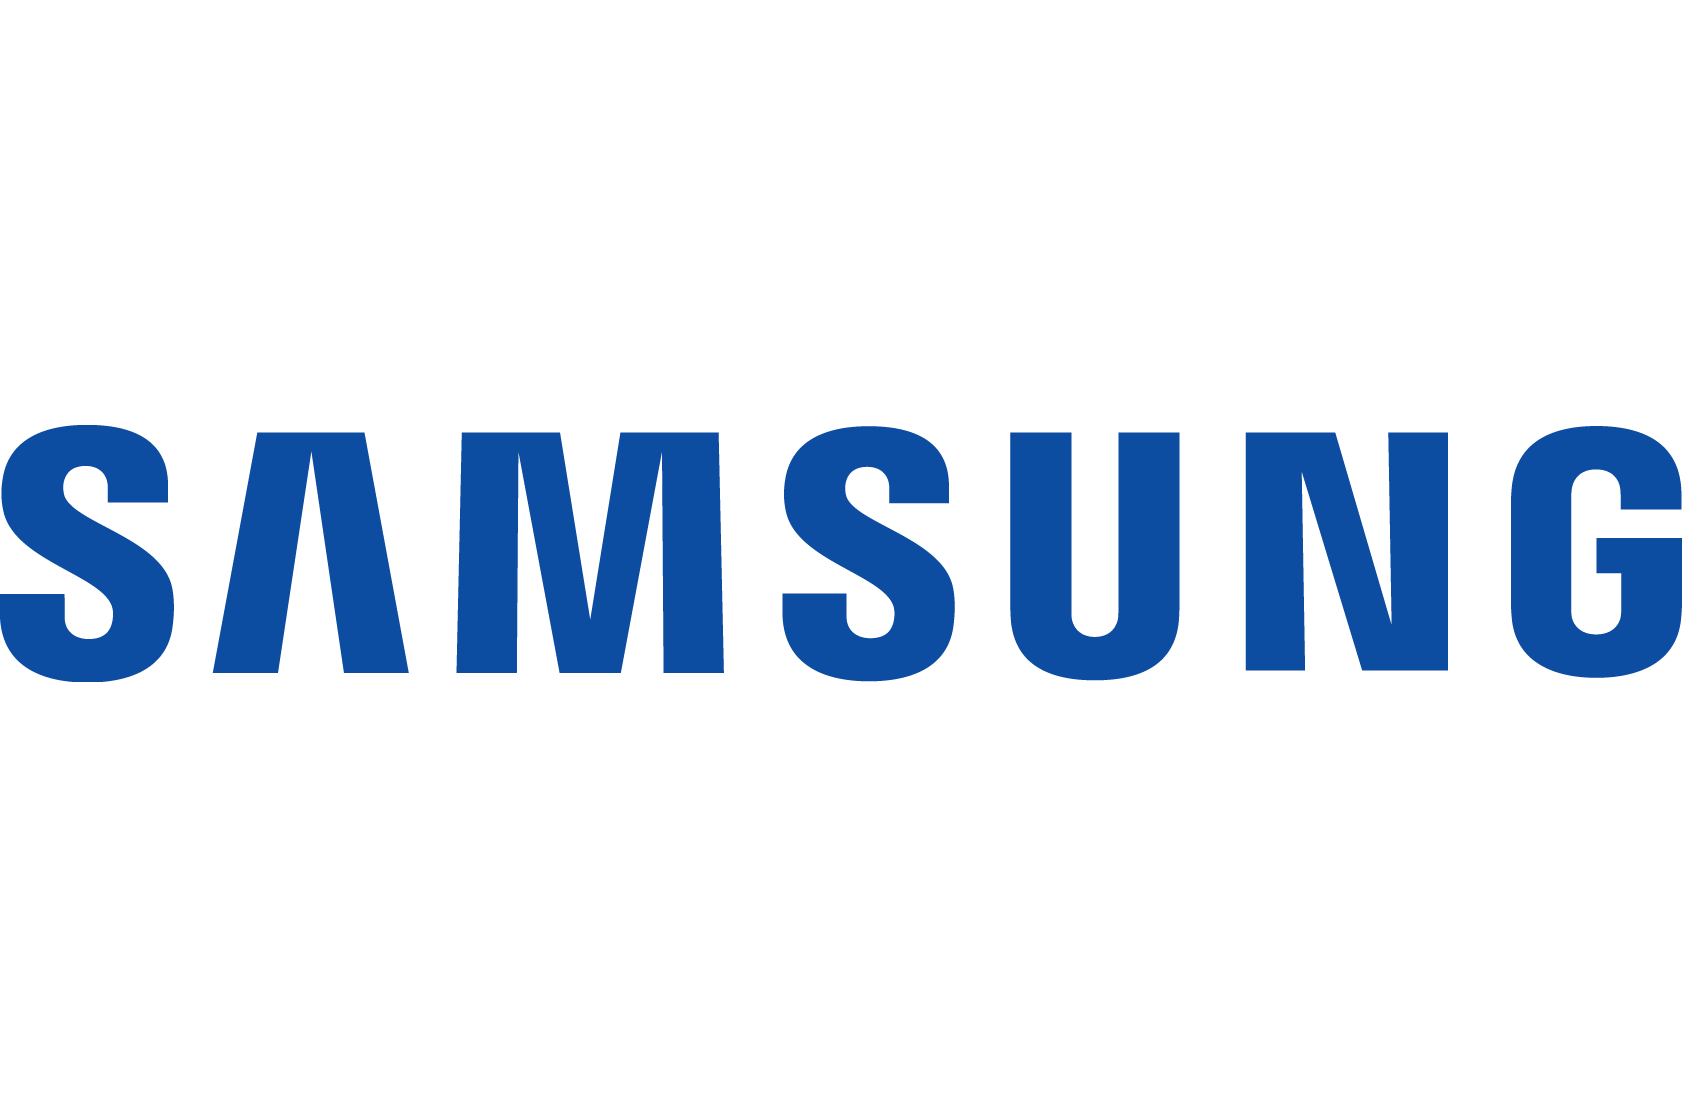 A Logo for Samsung, one of the world's largest producers of mobile devices